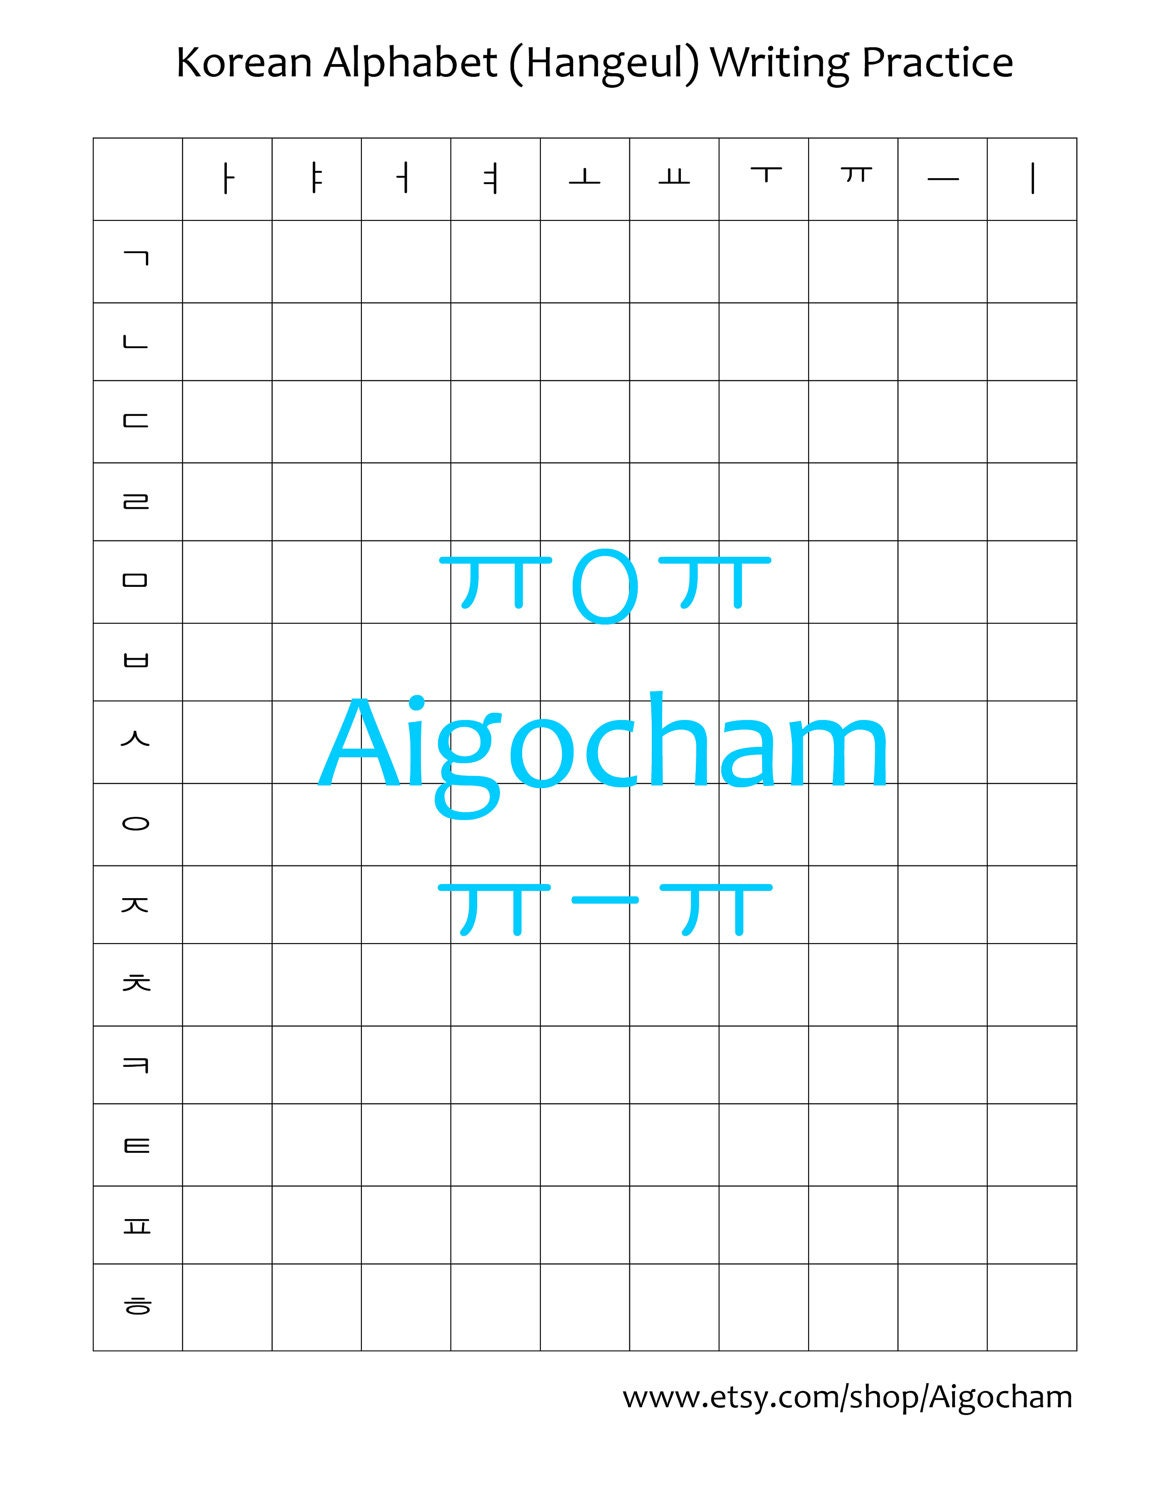 worksheet Korean Alphabet Worksheet korean alphabet worksheet related keywords suggestions writing practice 1 by aigocham on etsy